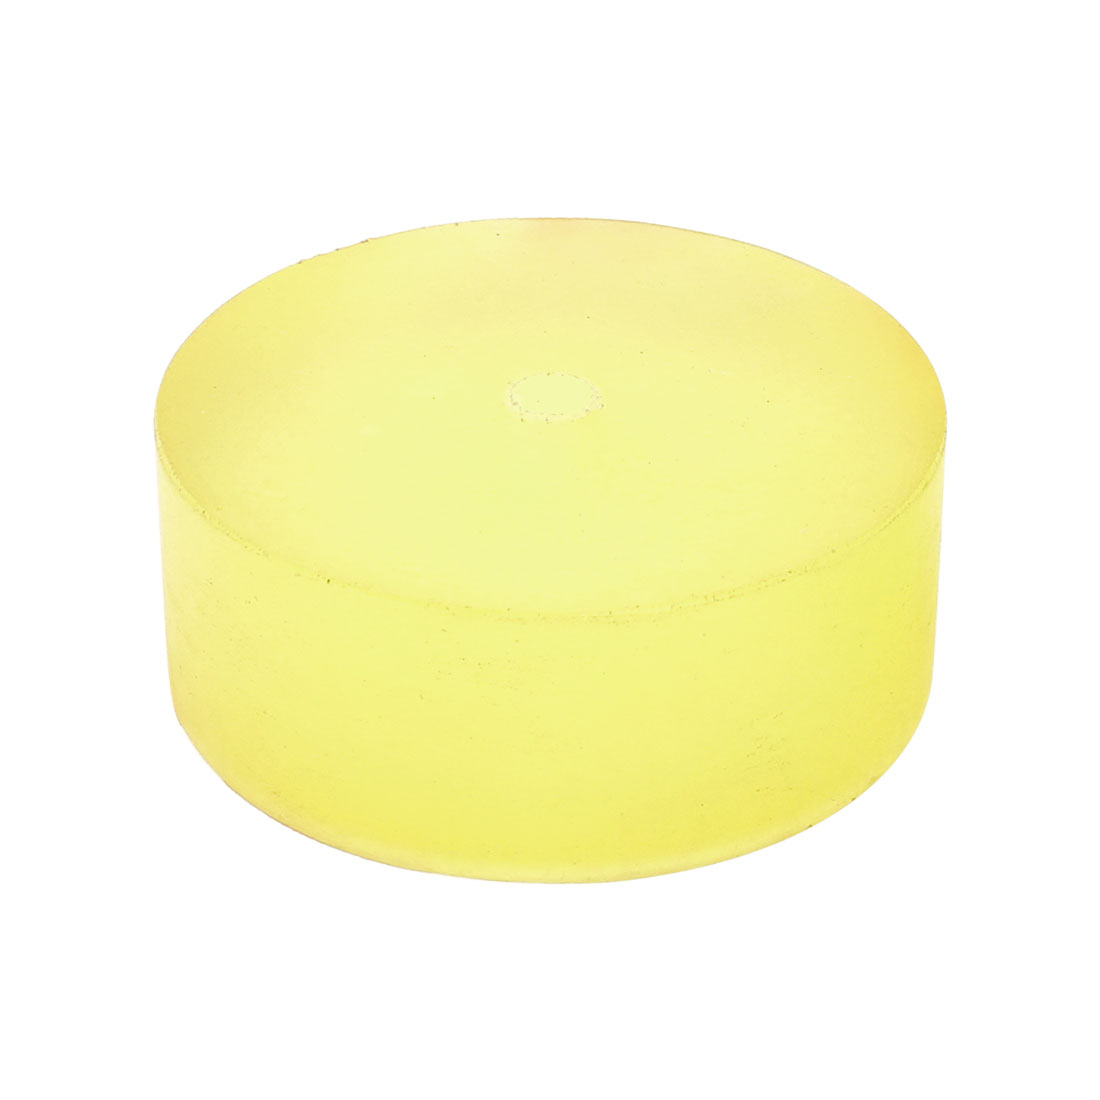 79mm-x-30mm-Shock-Absorber-Polyurethane-PU-Pad-Sheet-Clear-Yellow